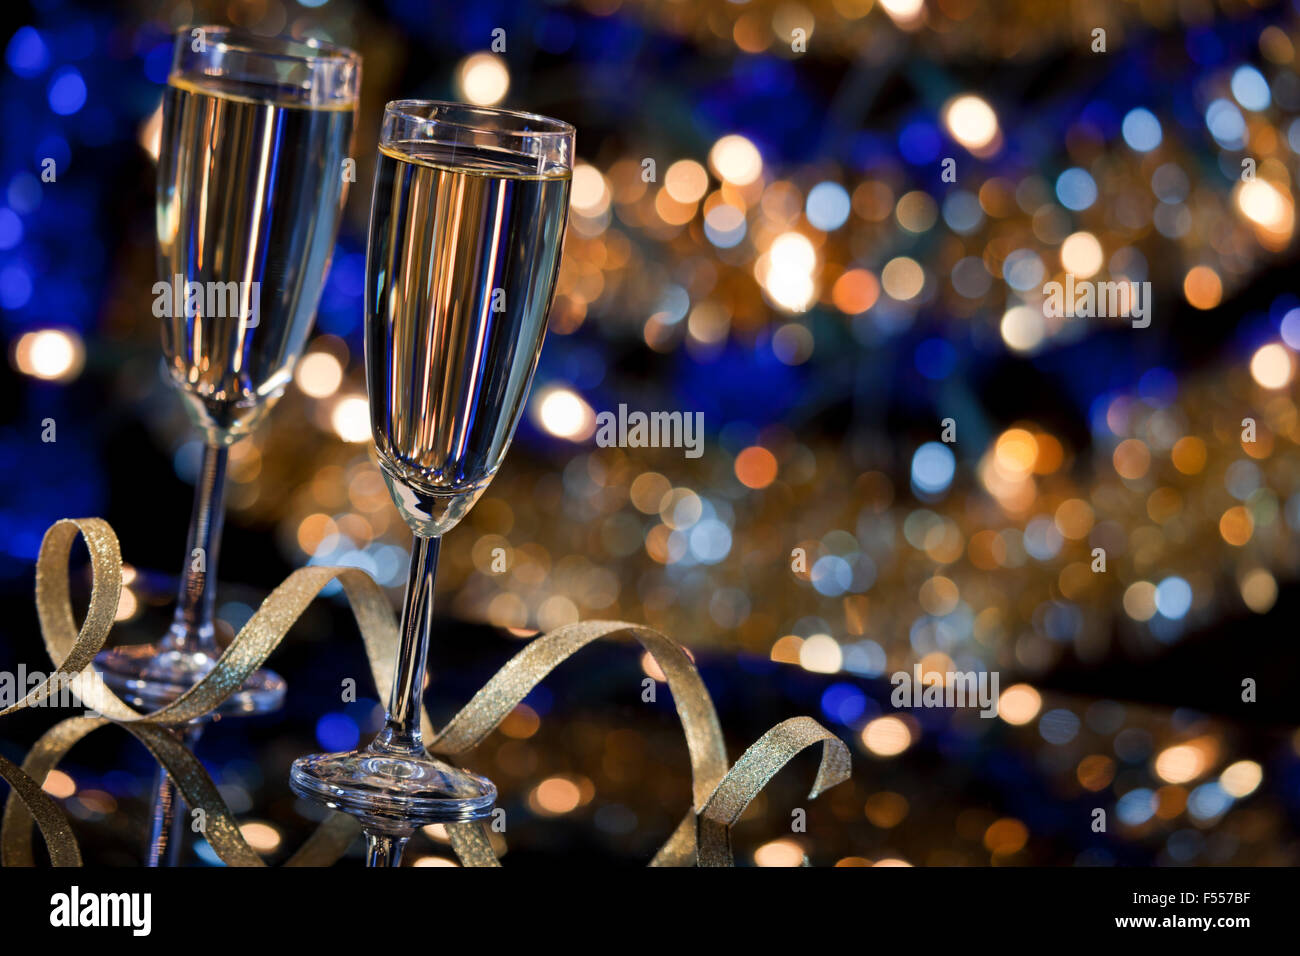 A New Year's Eve scene with champagne glasses and Christmas lights in the background. - Stock Image